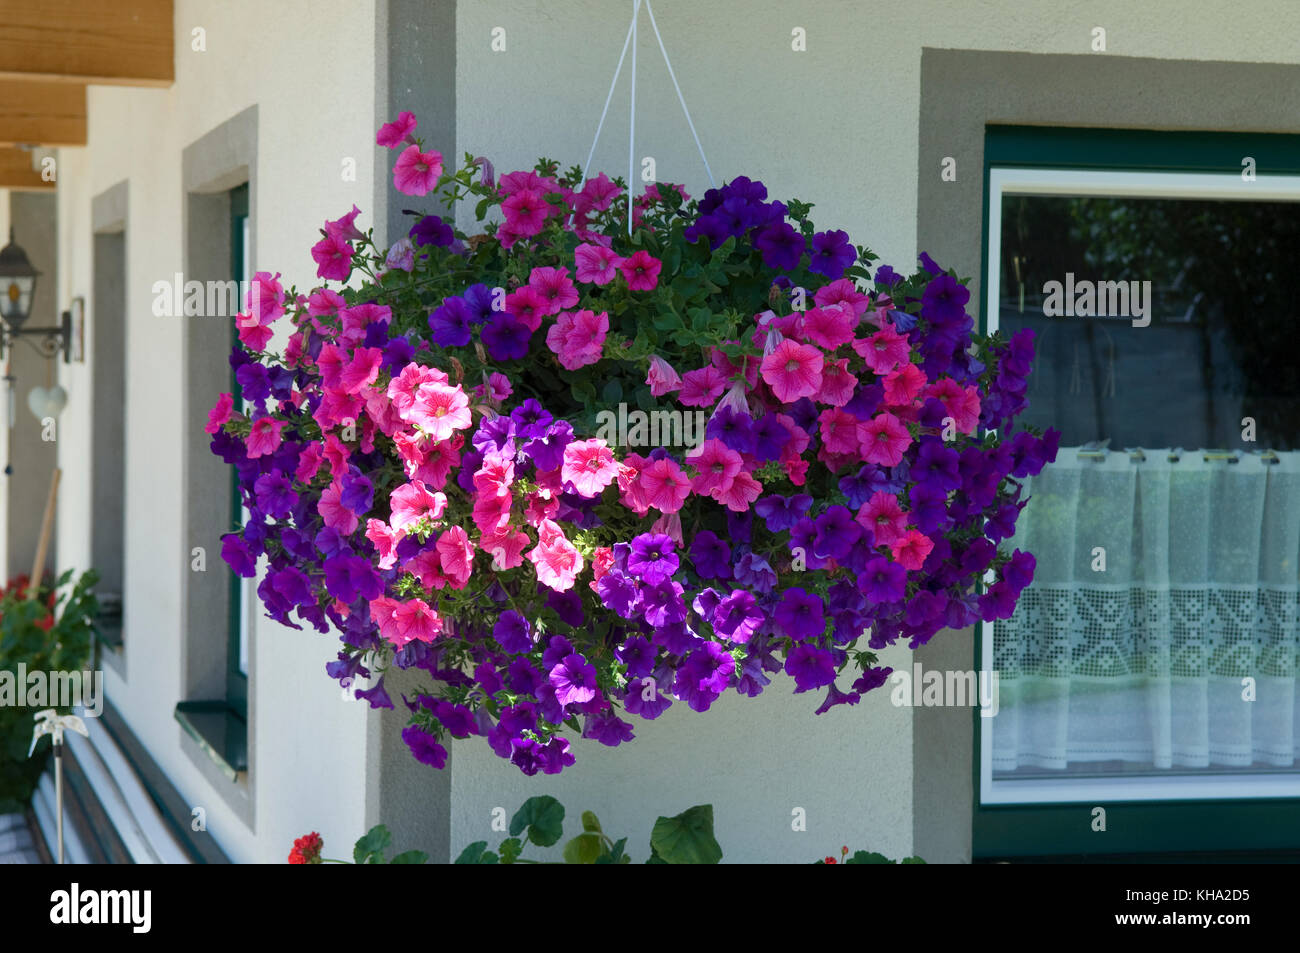 flower box with geraniums and petunias stock photos flower box with geraniums and petunias. Black Bedroom Furniture Sets. Home Design Ideas